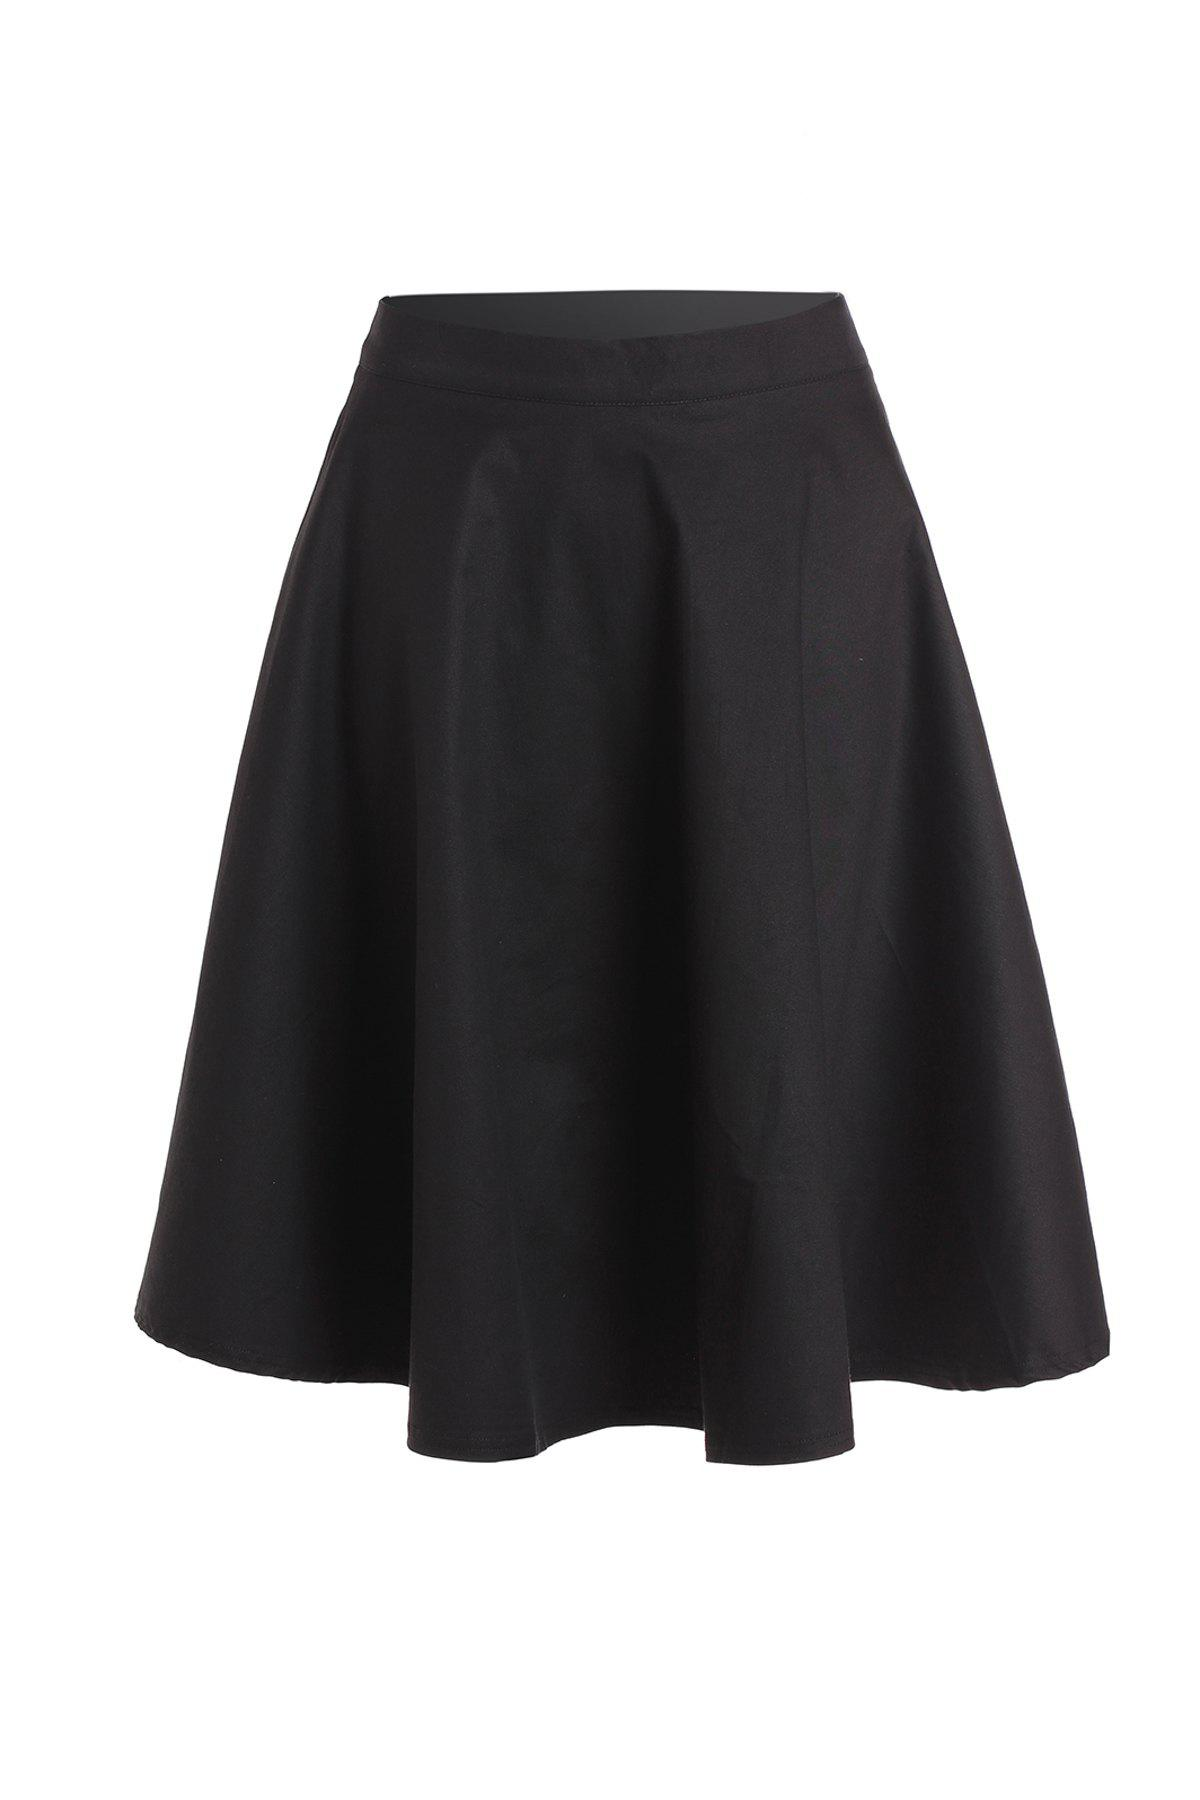 Noble Solid Color High Waist A-Line Ball Skirt For Women - BLACK S